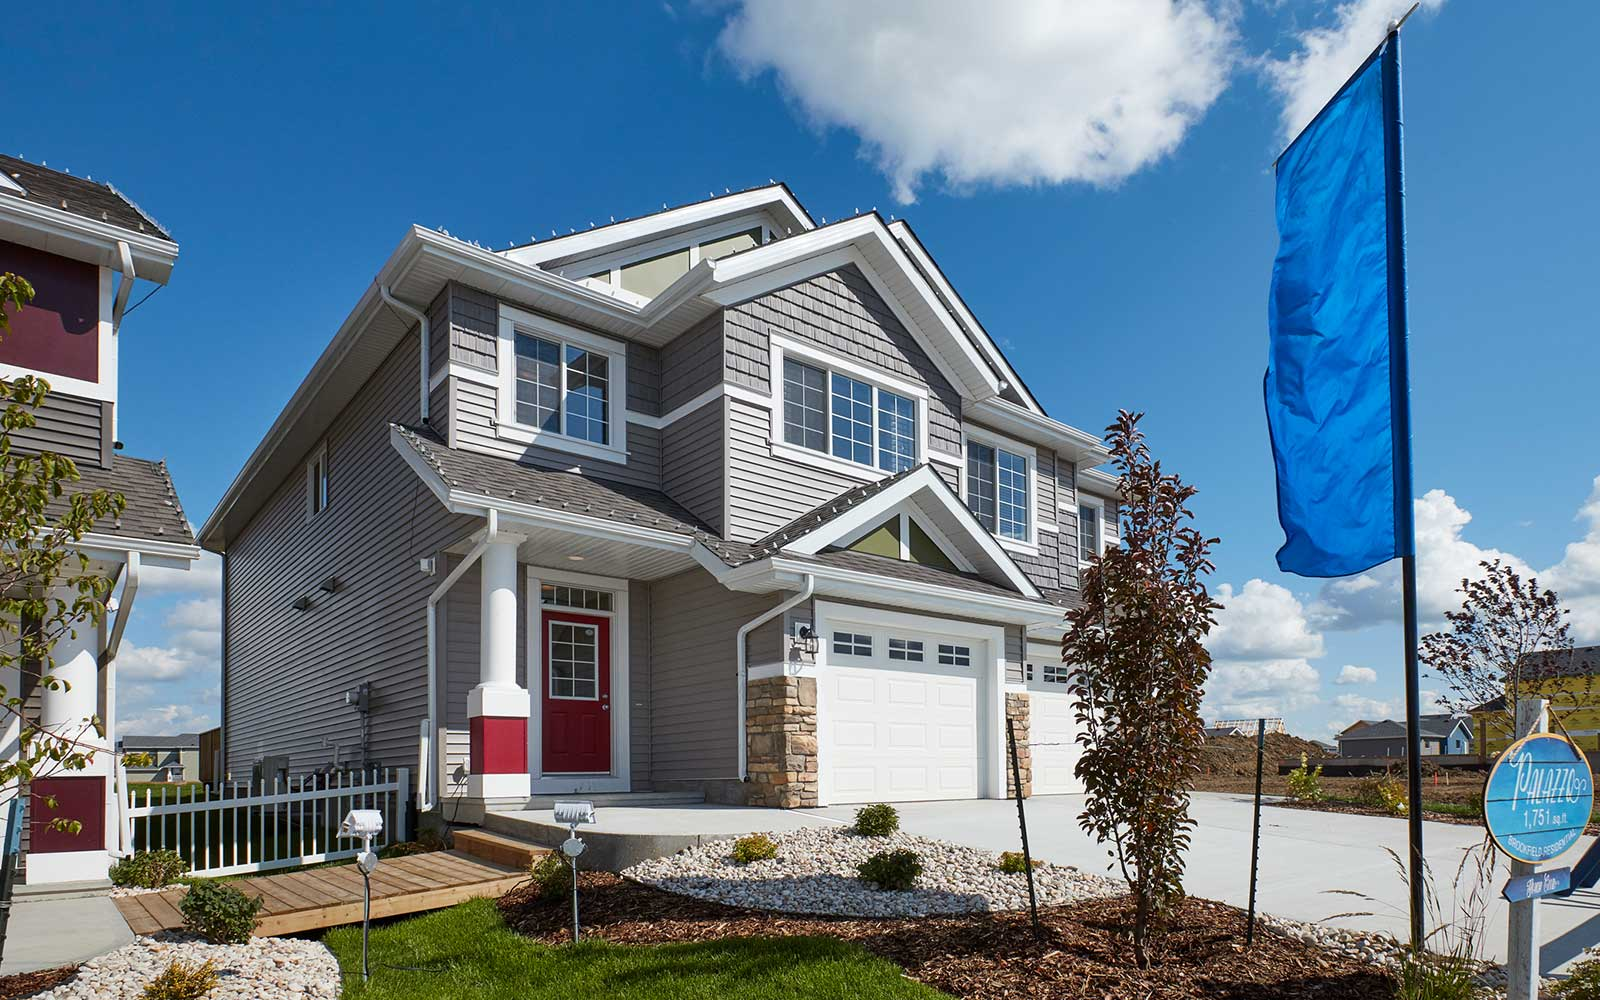 homes-in-lake-summerside-edmonton-alberta